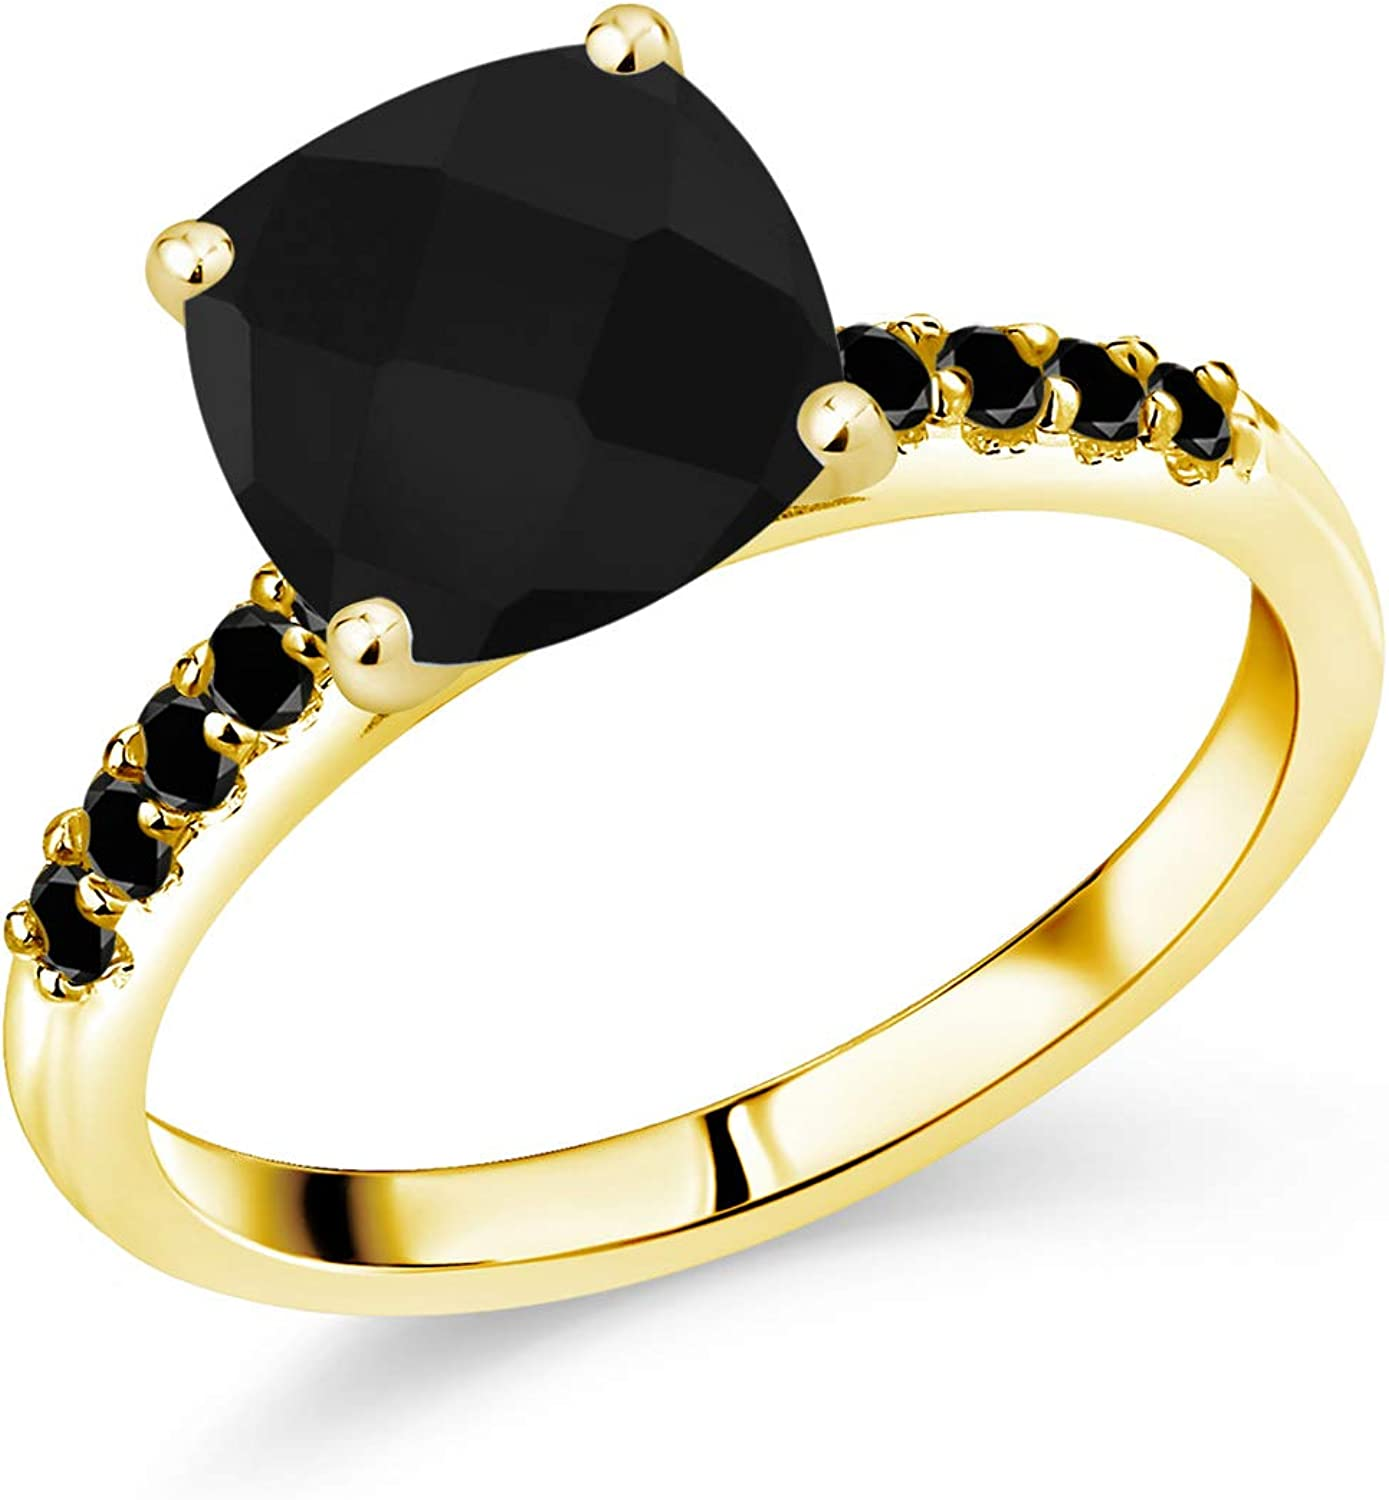 Gem Stone King 10K Yellow Gold Black Onyx and Black Diamond Women Engagement Ring (2.44 Ct Cushion Checkerboard Cut, Available in size 5, 6, 7, 8, 9)